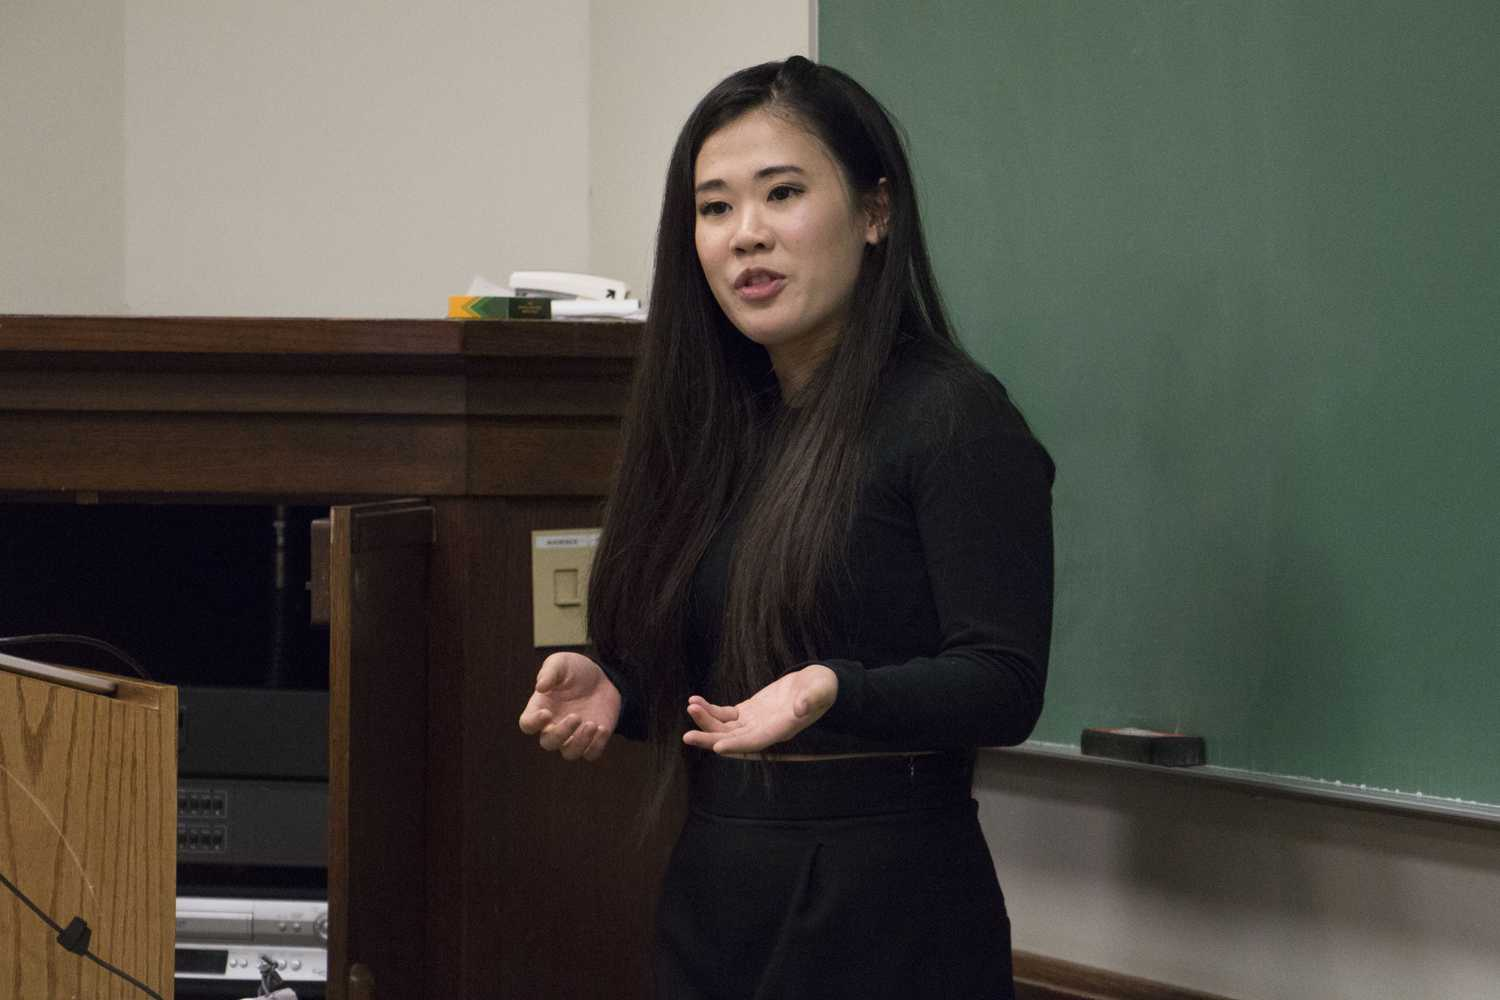 Emily Hirao, a senior majoring in business technology and president of Carnegie Mellon University's business technology club, visited Pitt Monday night to share her experiences with juggling being a student and an employee working in Wall Street banking. (Photo by Issi Glatts | Assistant Visual Editor)